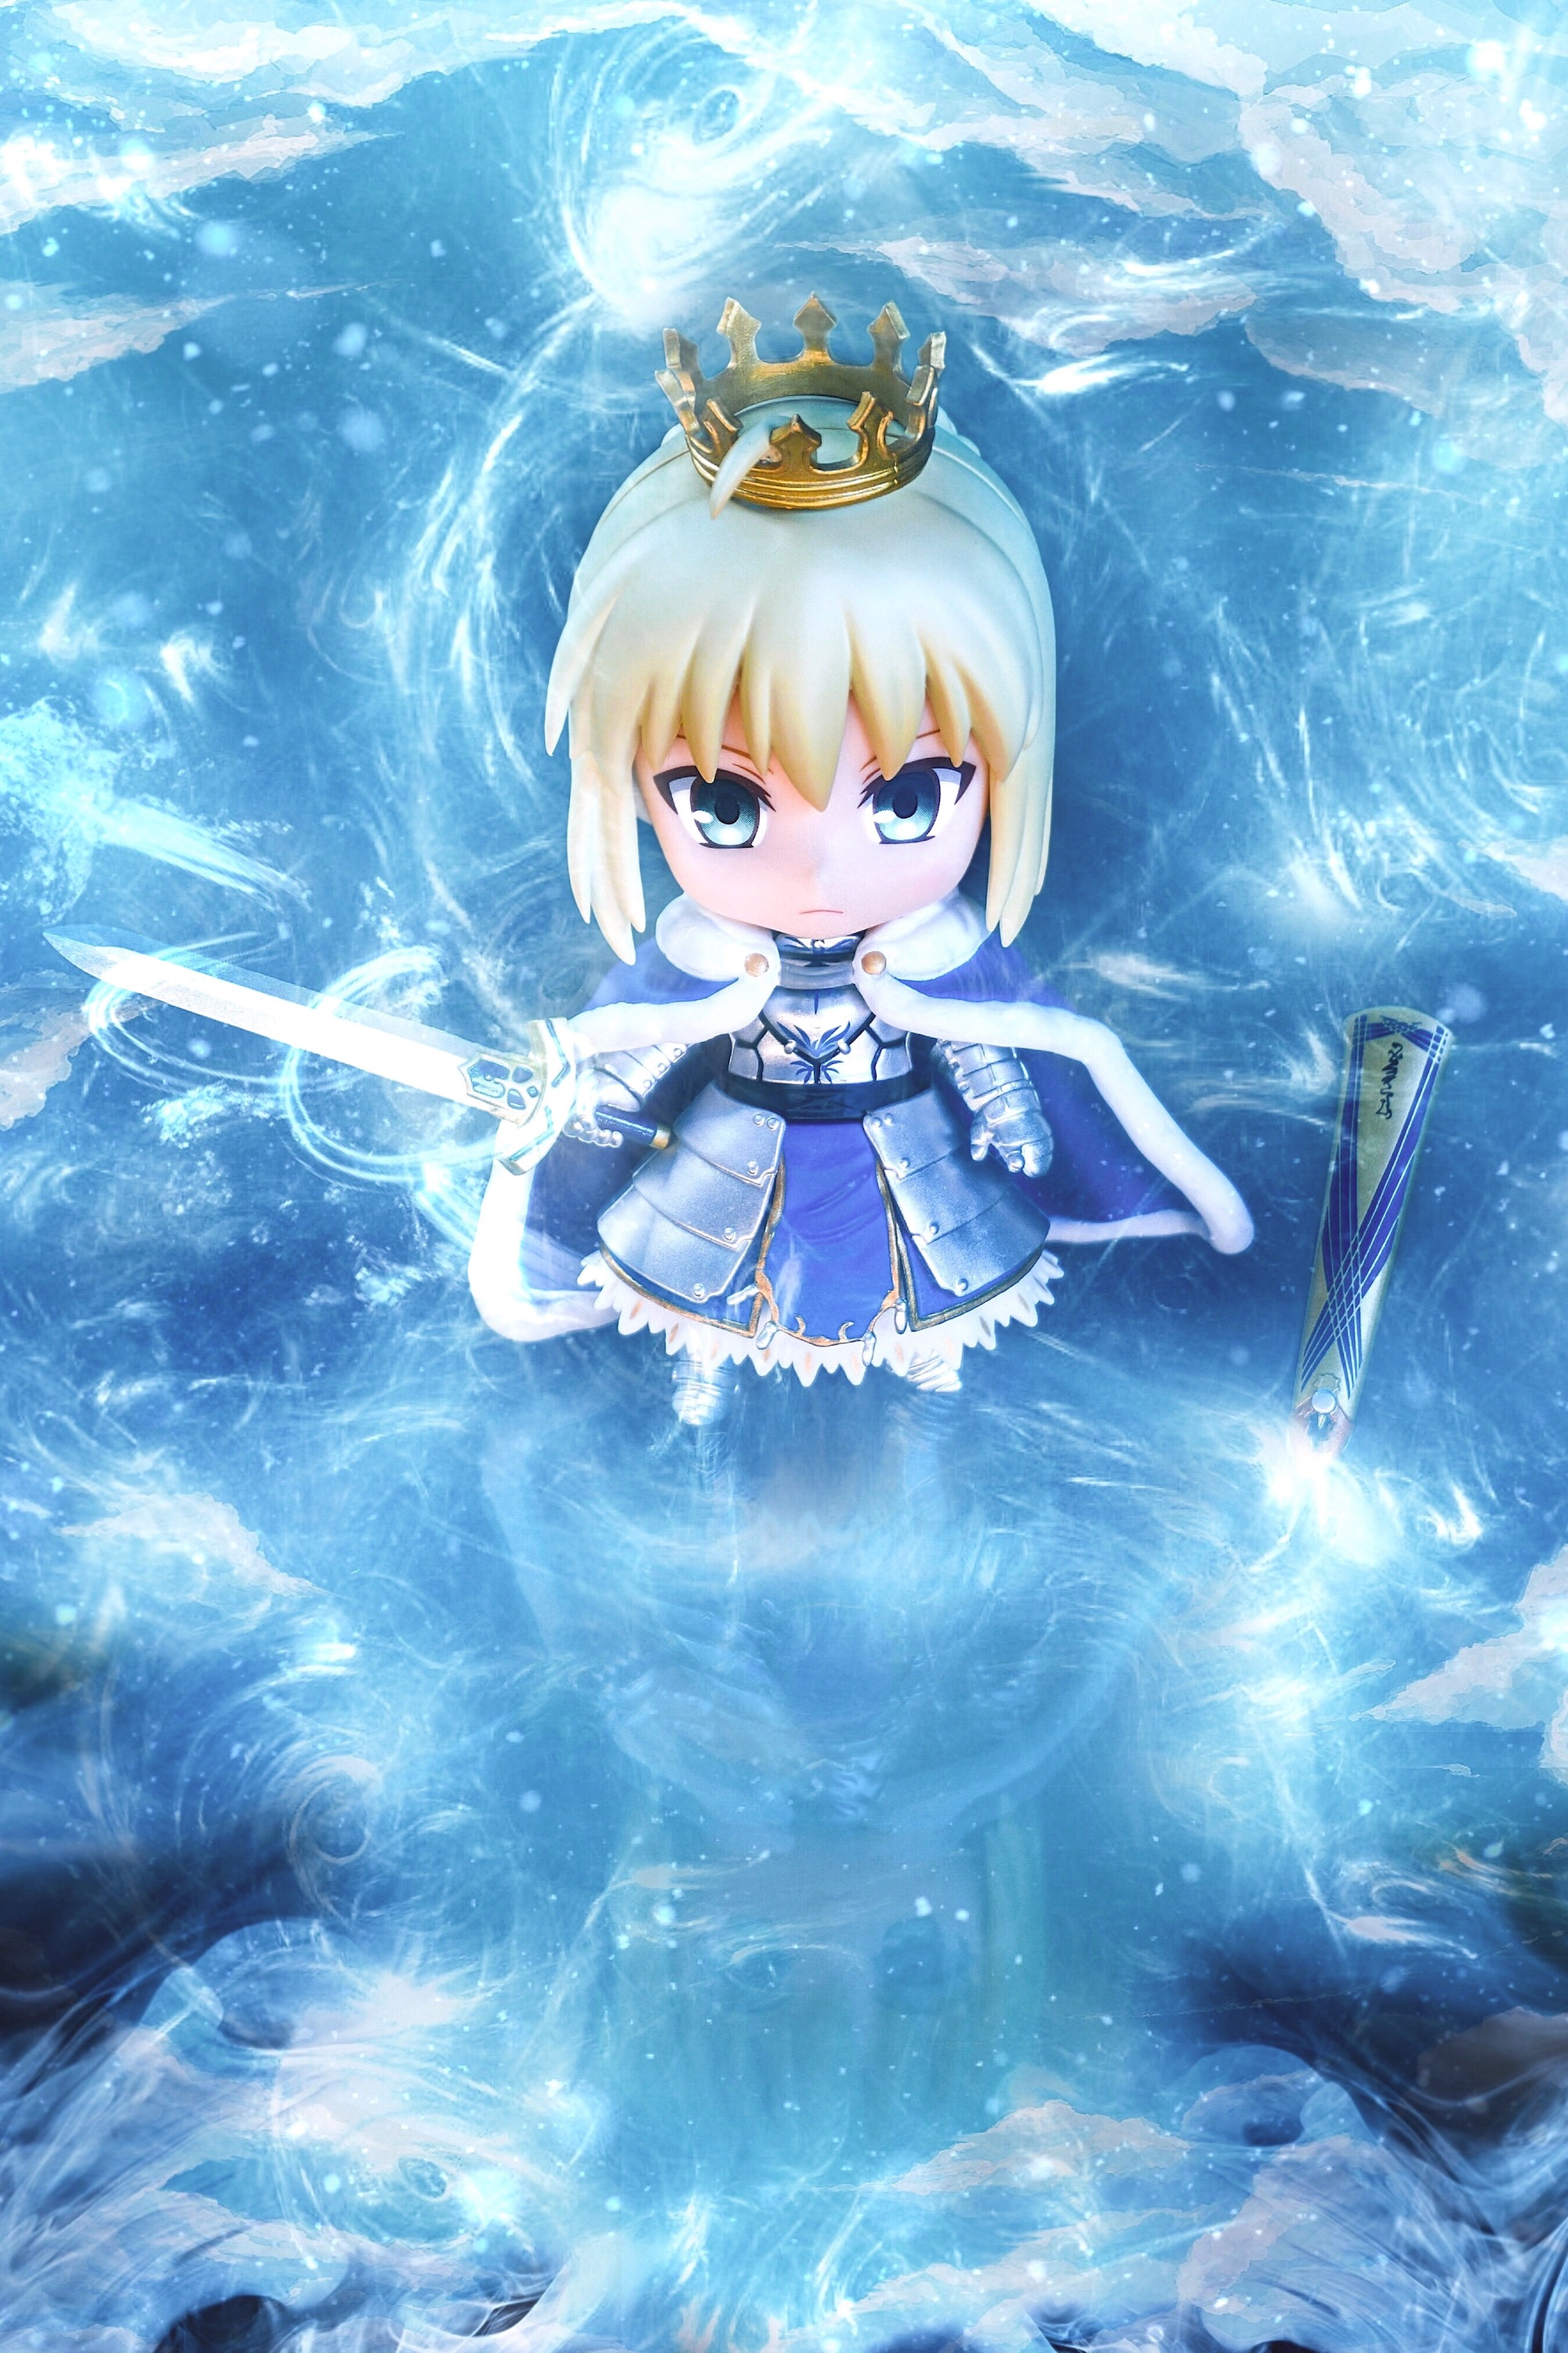 nendoroid saber type_moon good_smile_company nendoron fate/grand_order toytec_dtc wonder_festival_2016_[summer]